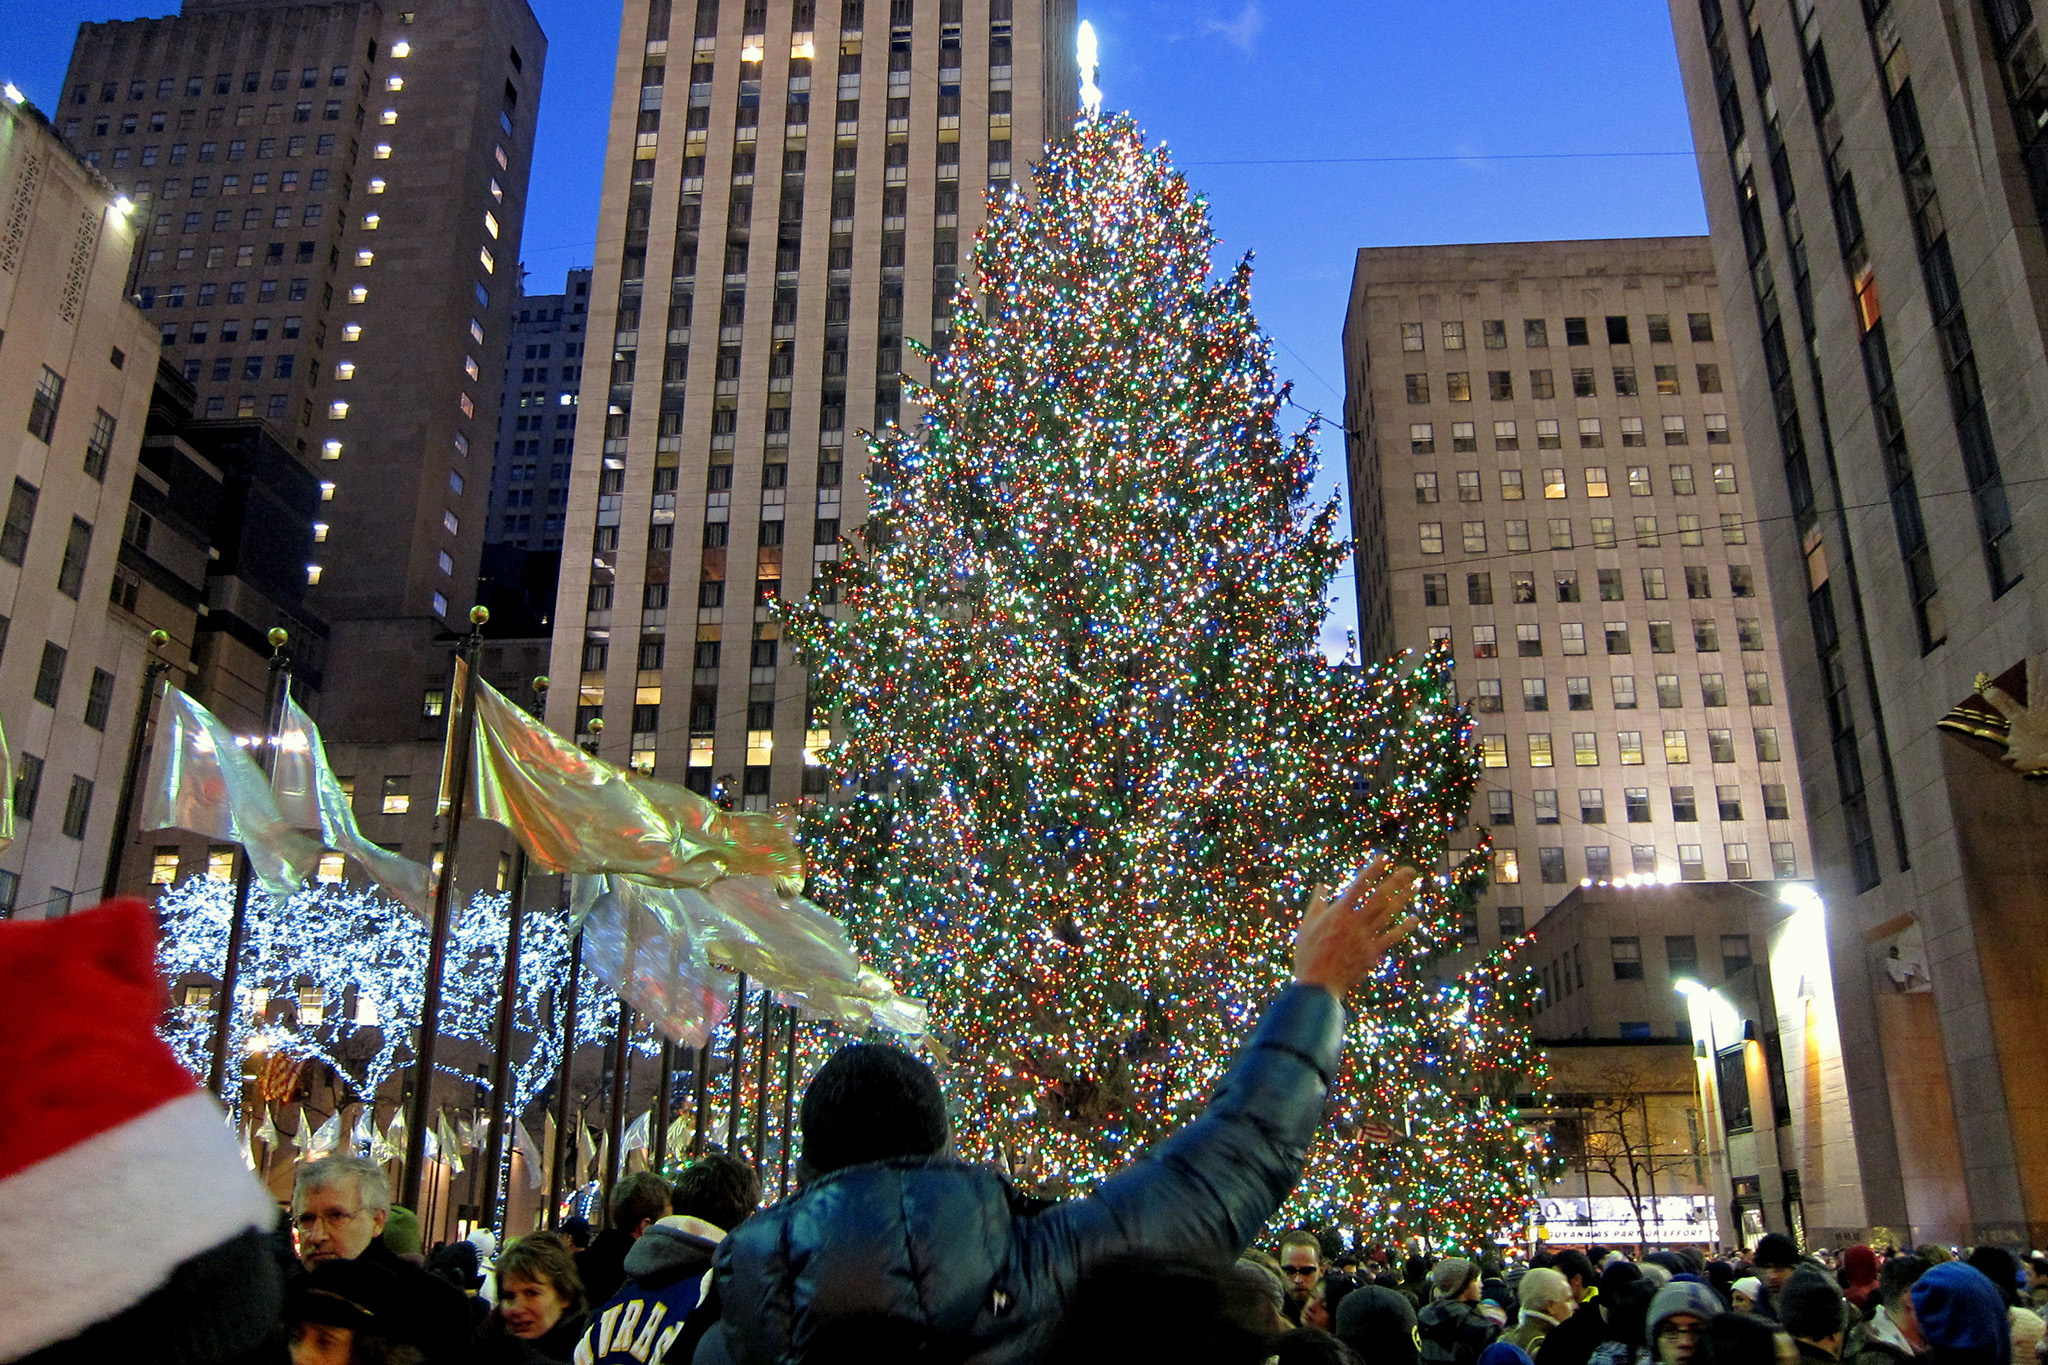 The Rockefeller Center Christmas Tree Lighting Performers Have Been Announced